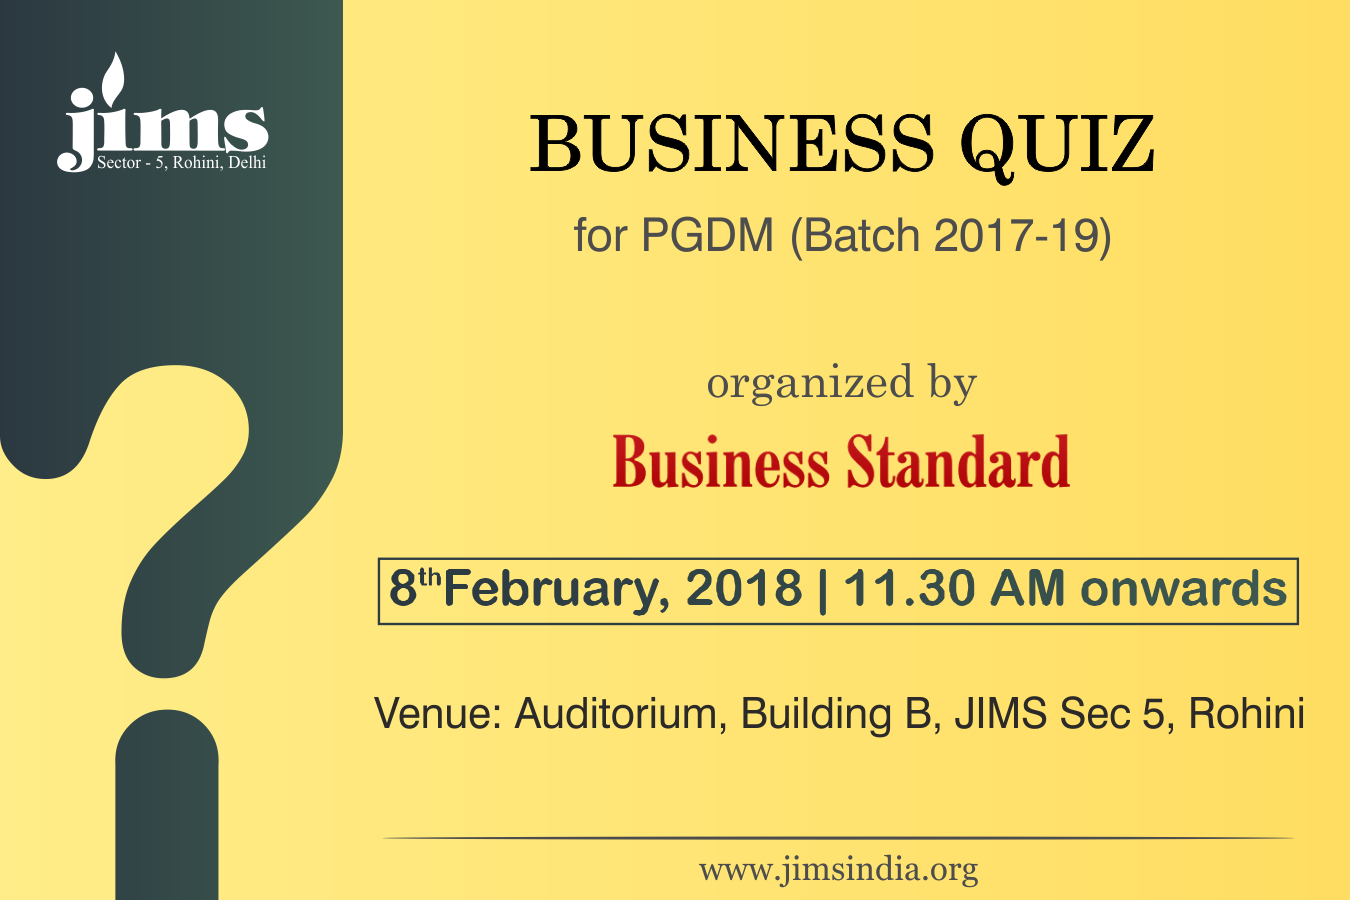 A written Business Quiz is being organized by Business Standard for PGDM Batch 2017-19 at JIMS Rohini